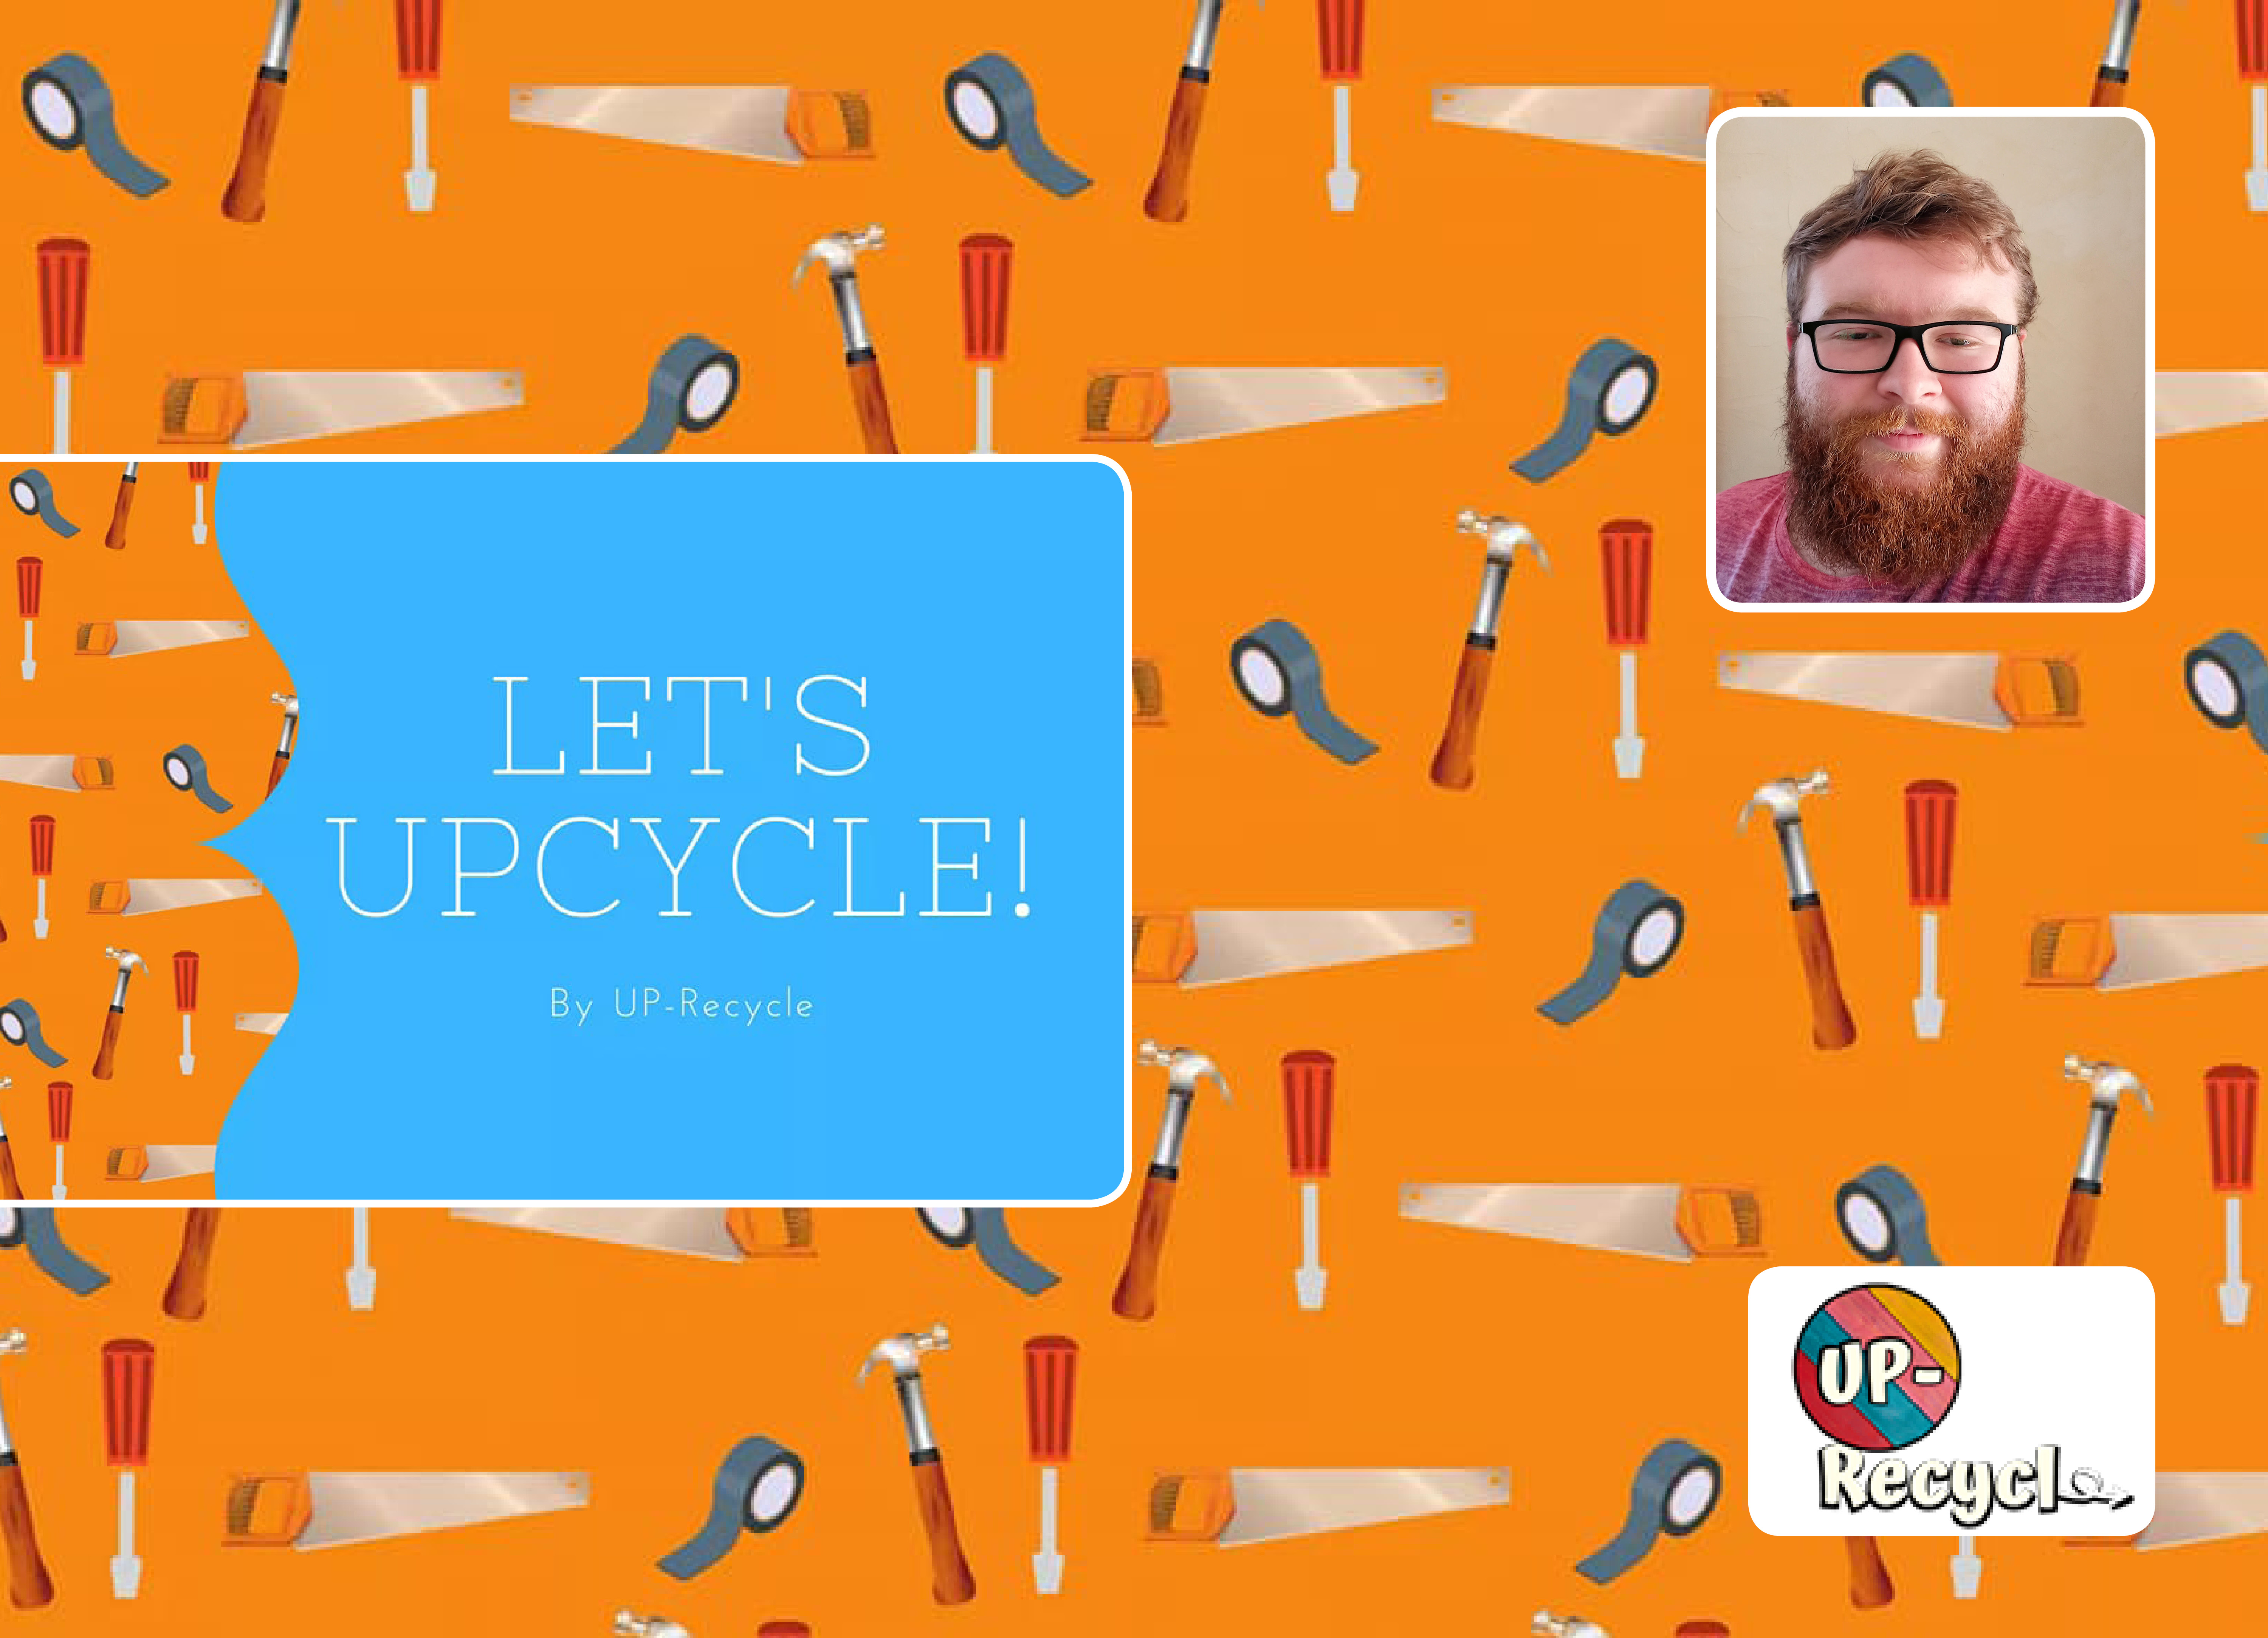 UP-Recycle